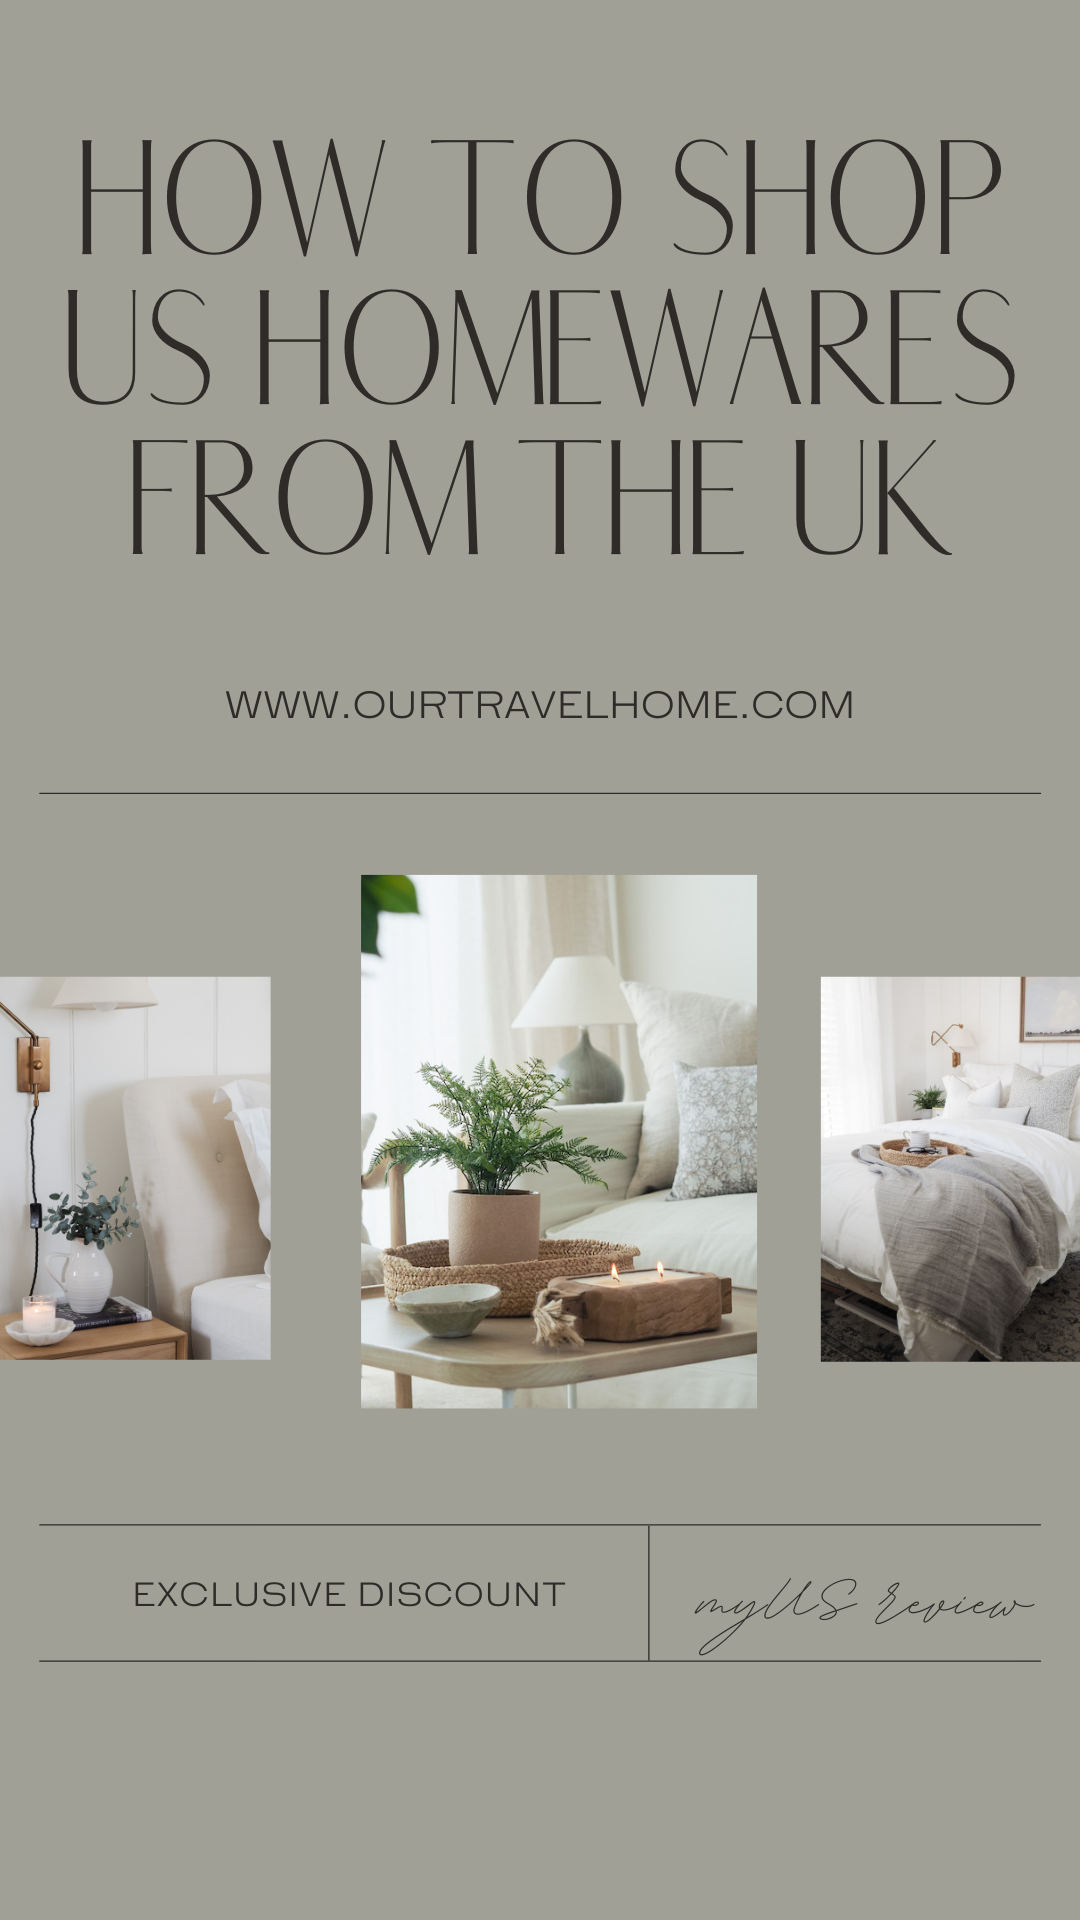 How to shop US homewares from the UK pin